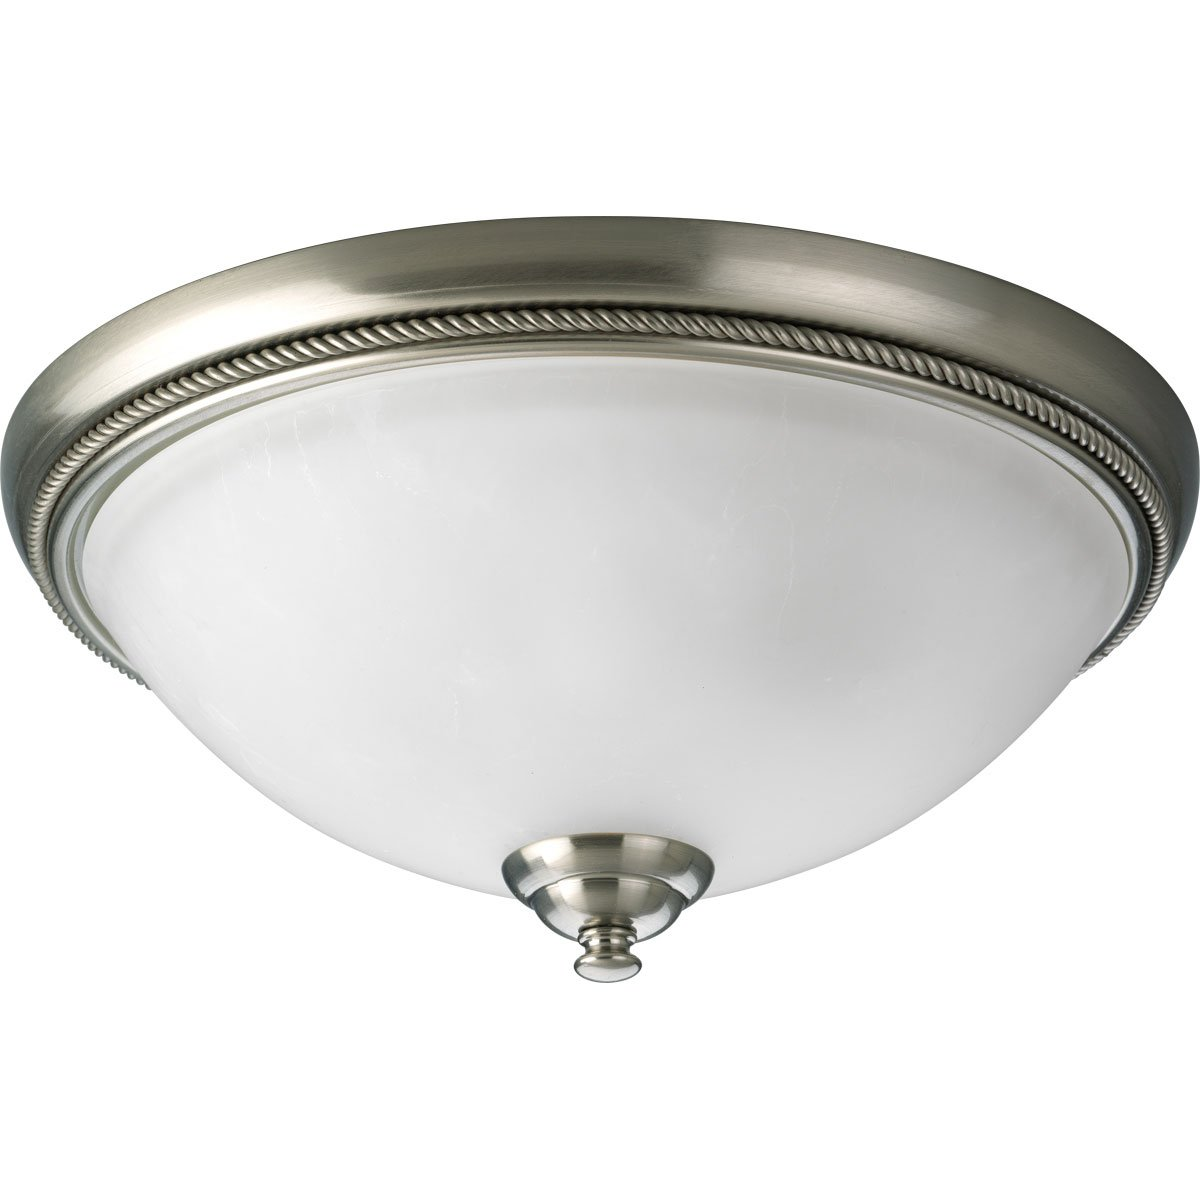 Progress Lighting P3479-09 2-Light Close-To-Ceiling with Etched Watermark Glass and Twisted Wire Details, Brushed Nickel